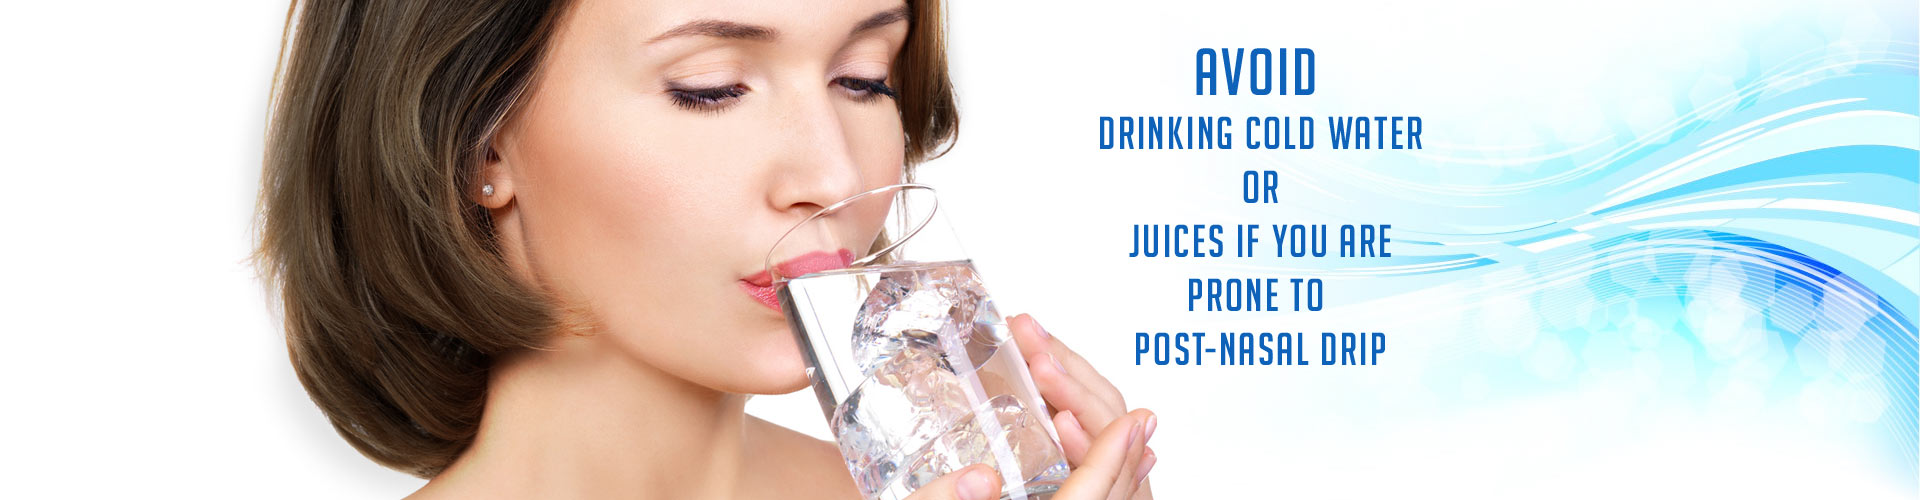 Avoid Drinking Cold Water or Juices if You Are Prone to Post-Nasal Drip